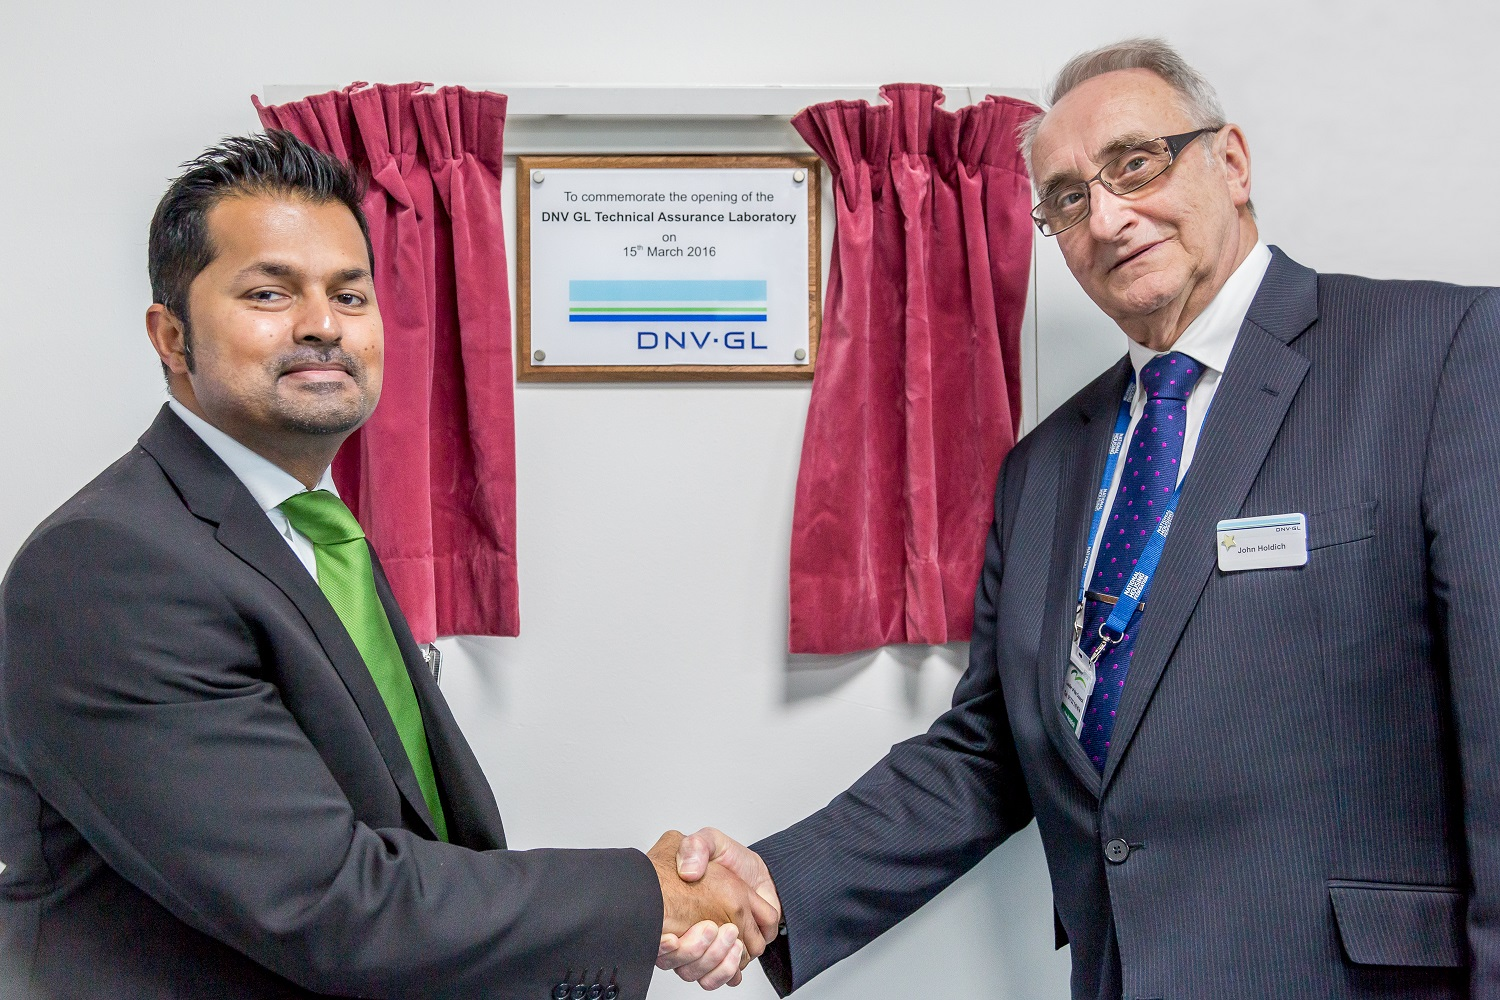 DNV GL opens first Technical Assurance Laboratory for smart energy and cyber security in Peterborough